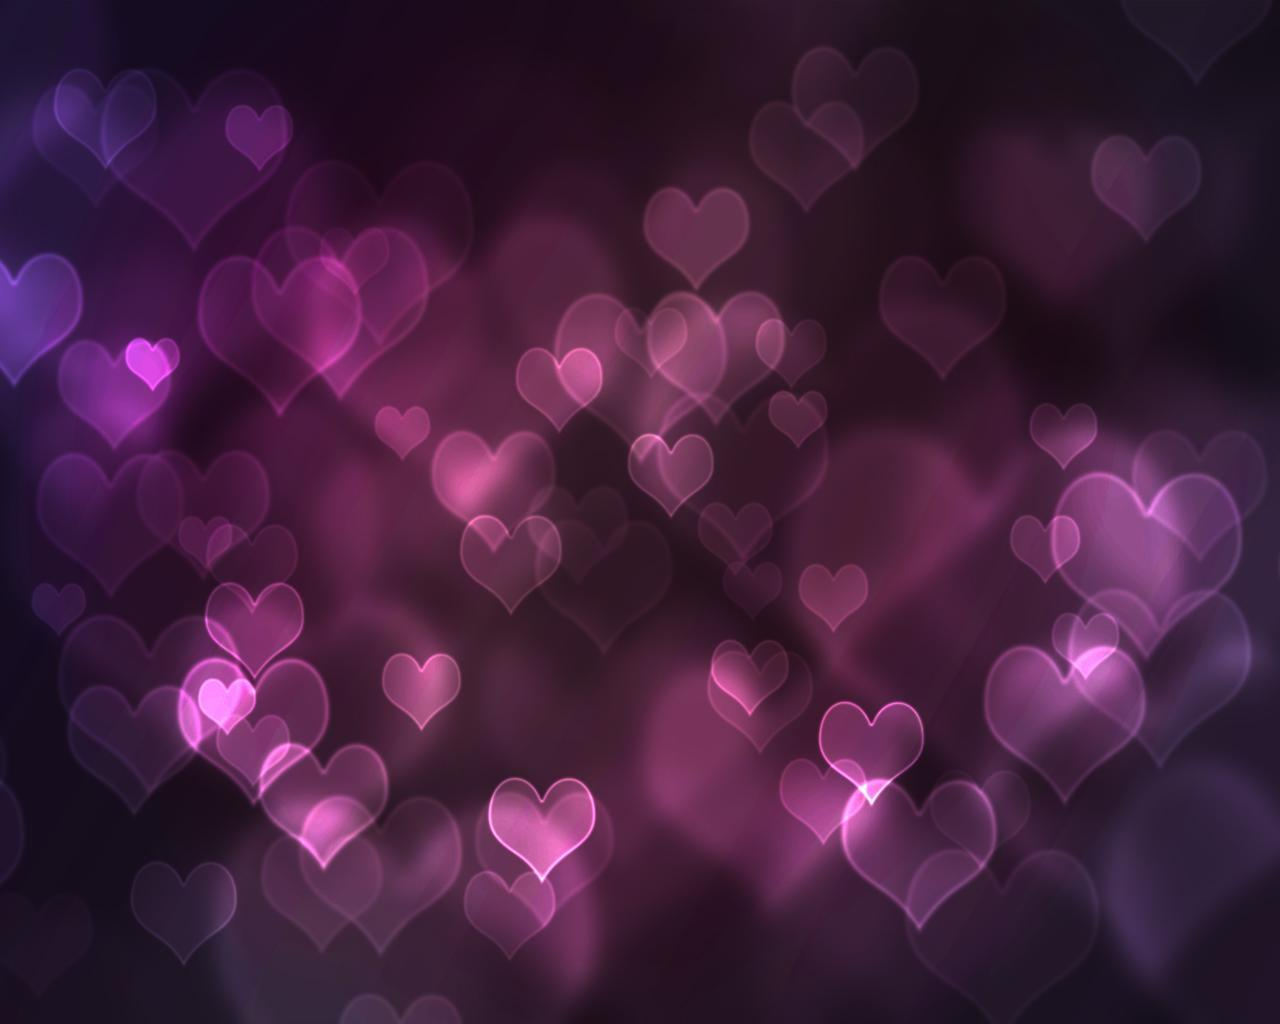 Wallpaper Love Violet : Purple Hearts Wallpapers - Wallpaper cave